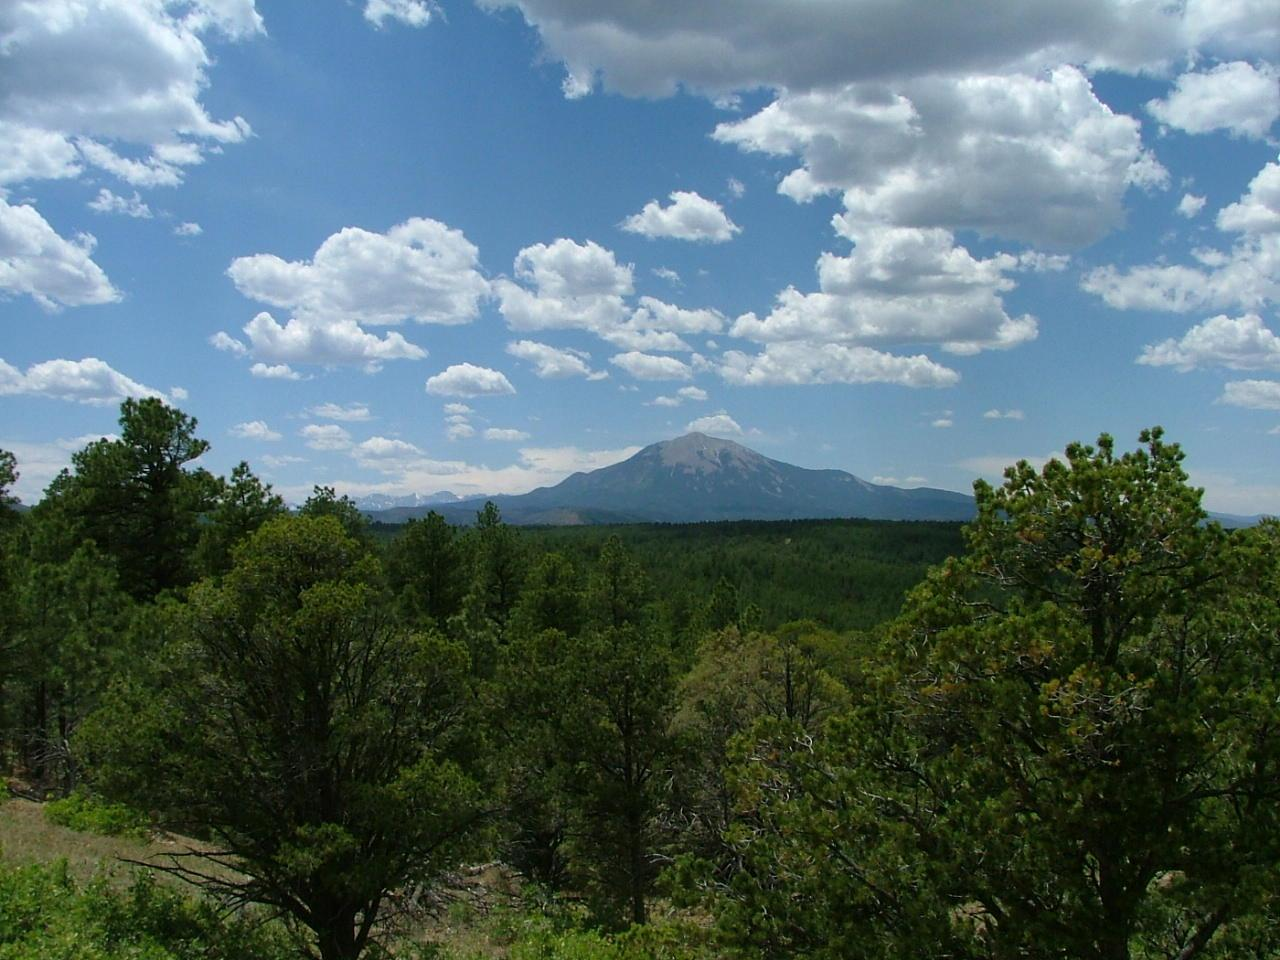 https://bt-photos.global.ssl.fastly.net/spanishpeaks/orig_boomver_1_19-217-2.jpg